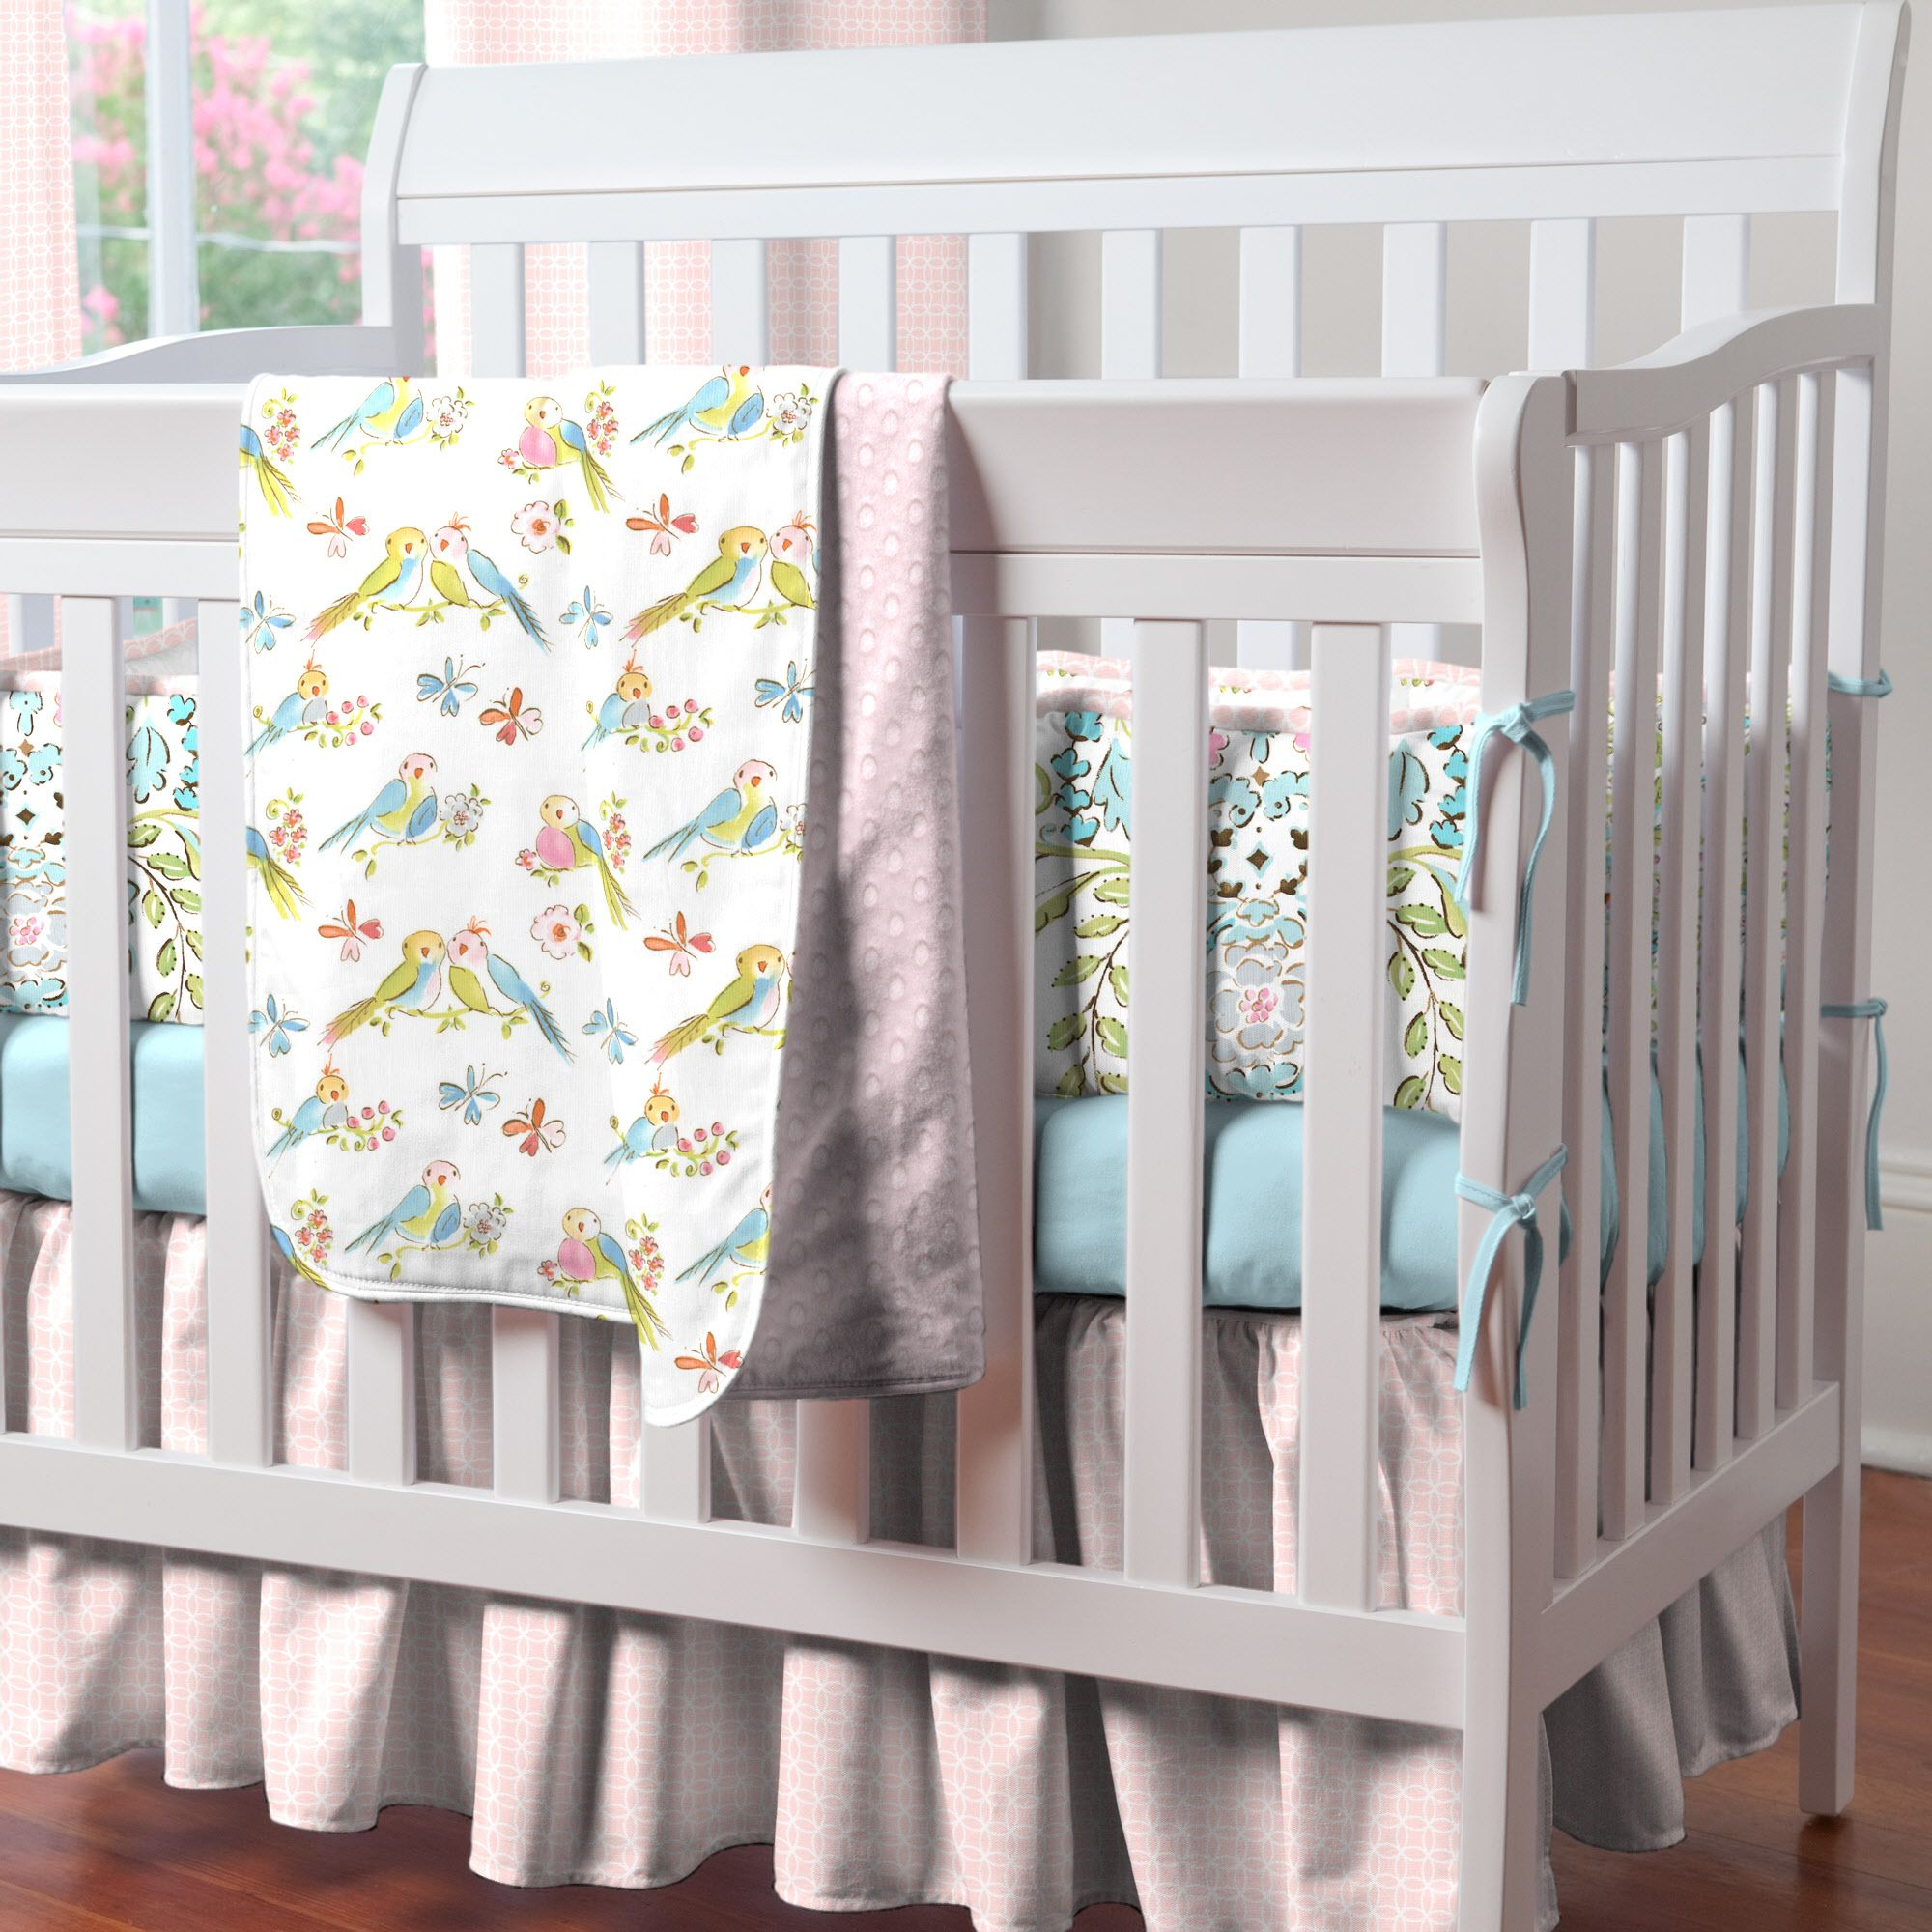 wall bedding light looking baby extraordinary decoration bed cribs mobile nursery good and brown including paint crib white using gorgeous beige set b pattern valance room zigzag neutral teddy gray grey various yellow star bear